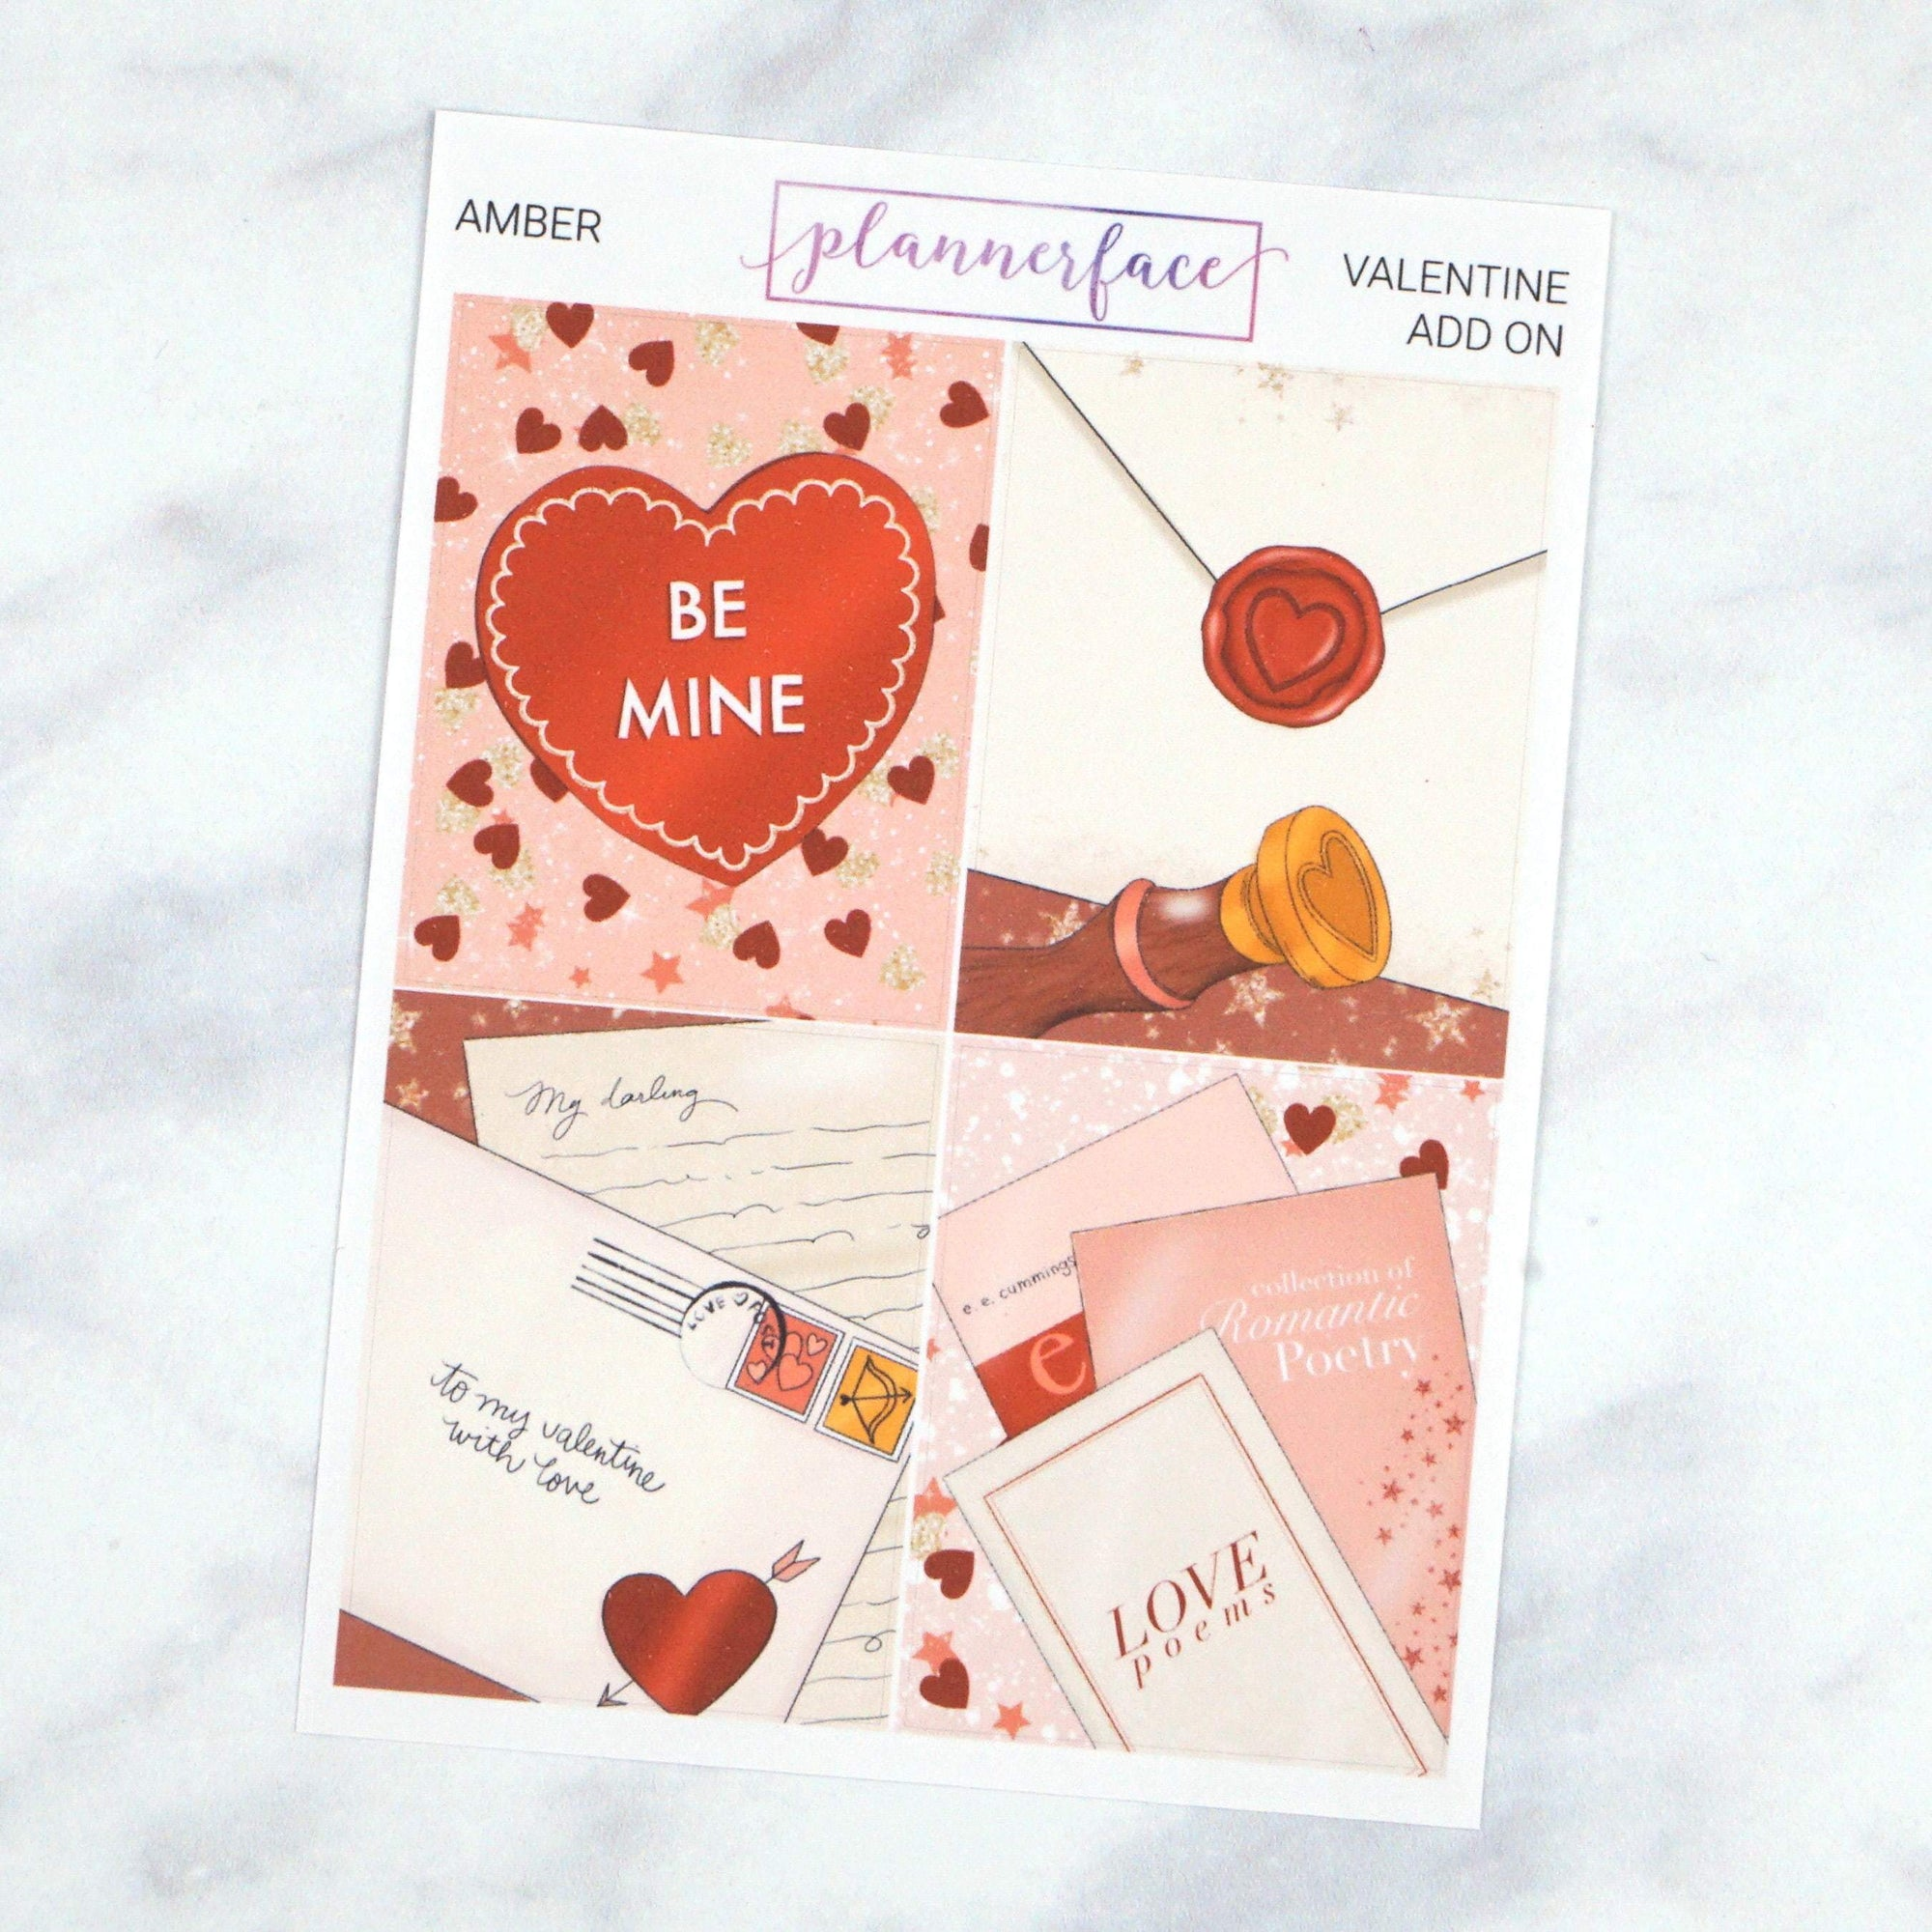 Plannerface Amber - Valentine Add-on Boxes Planner Stickers